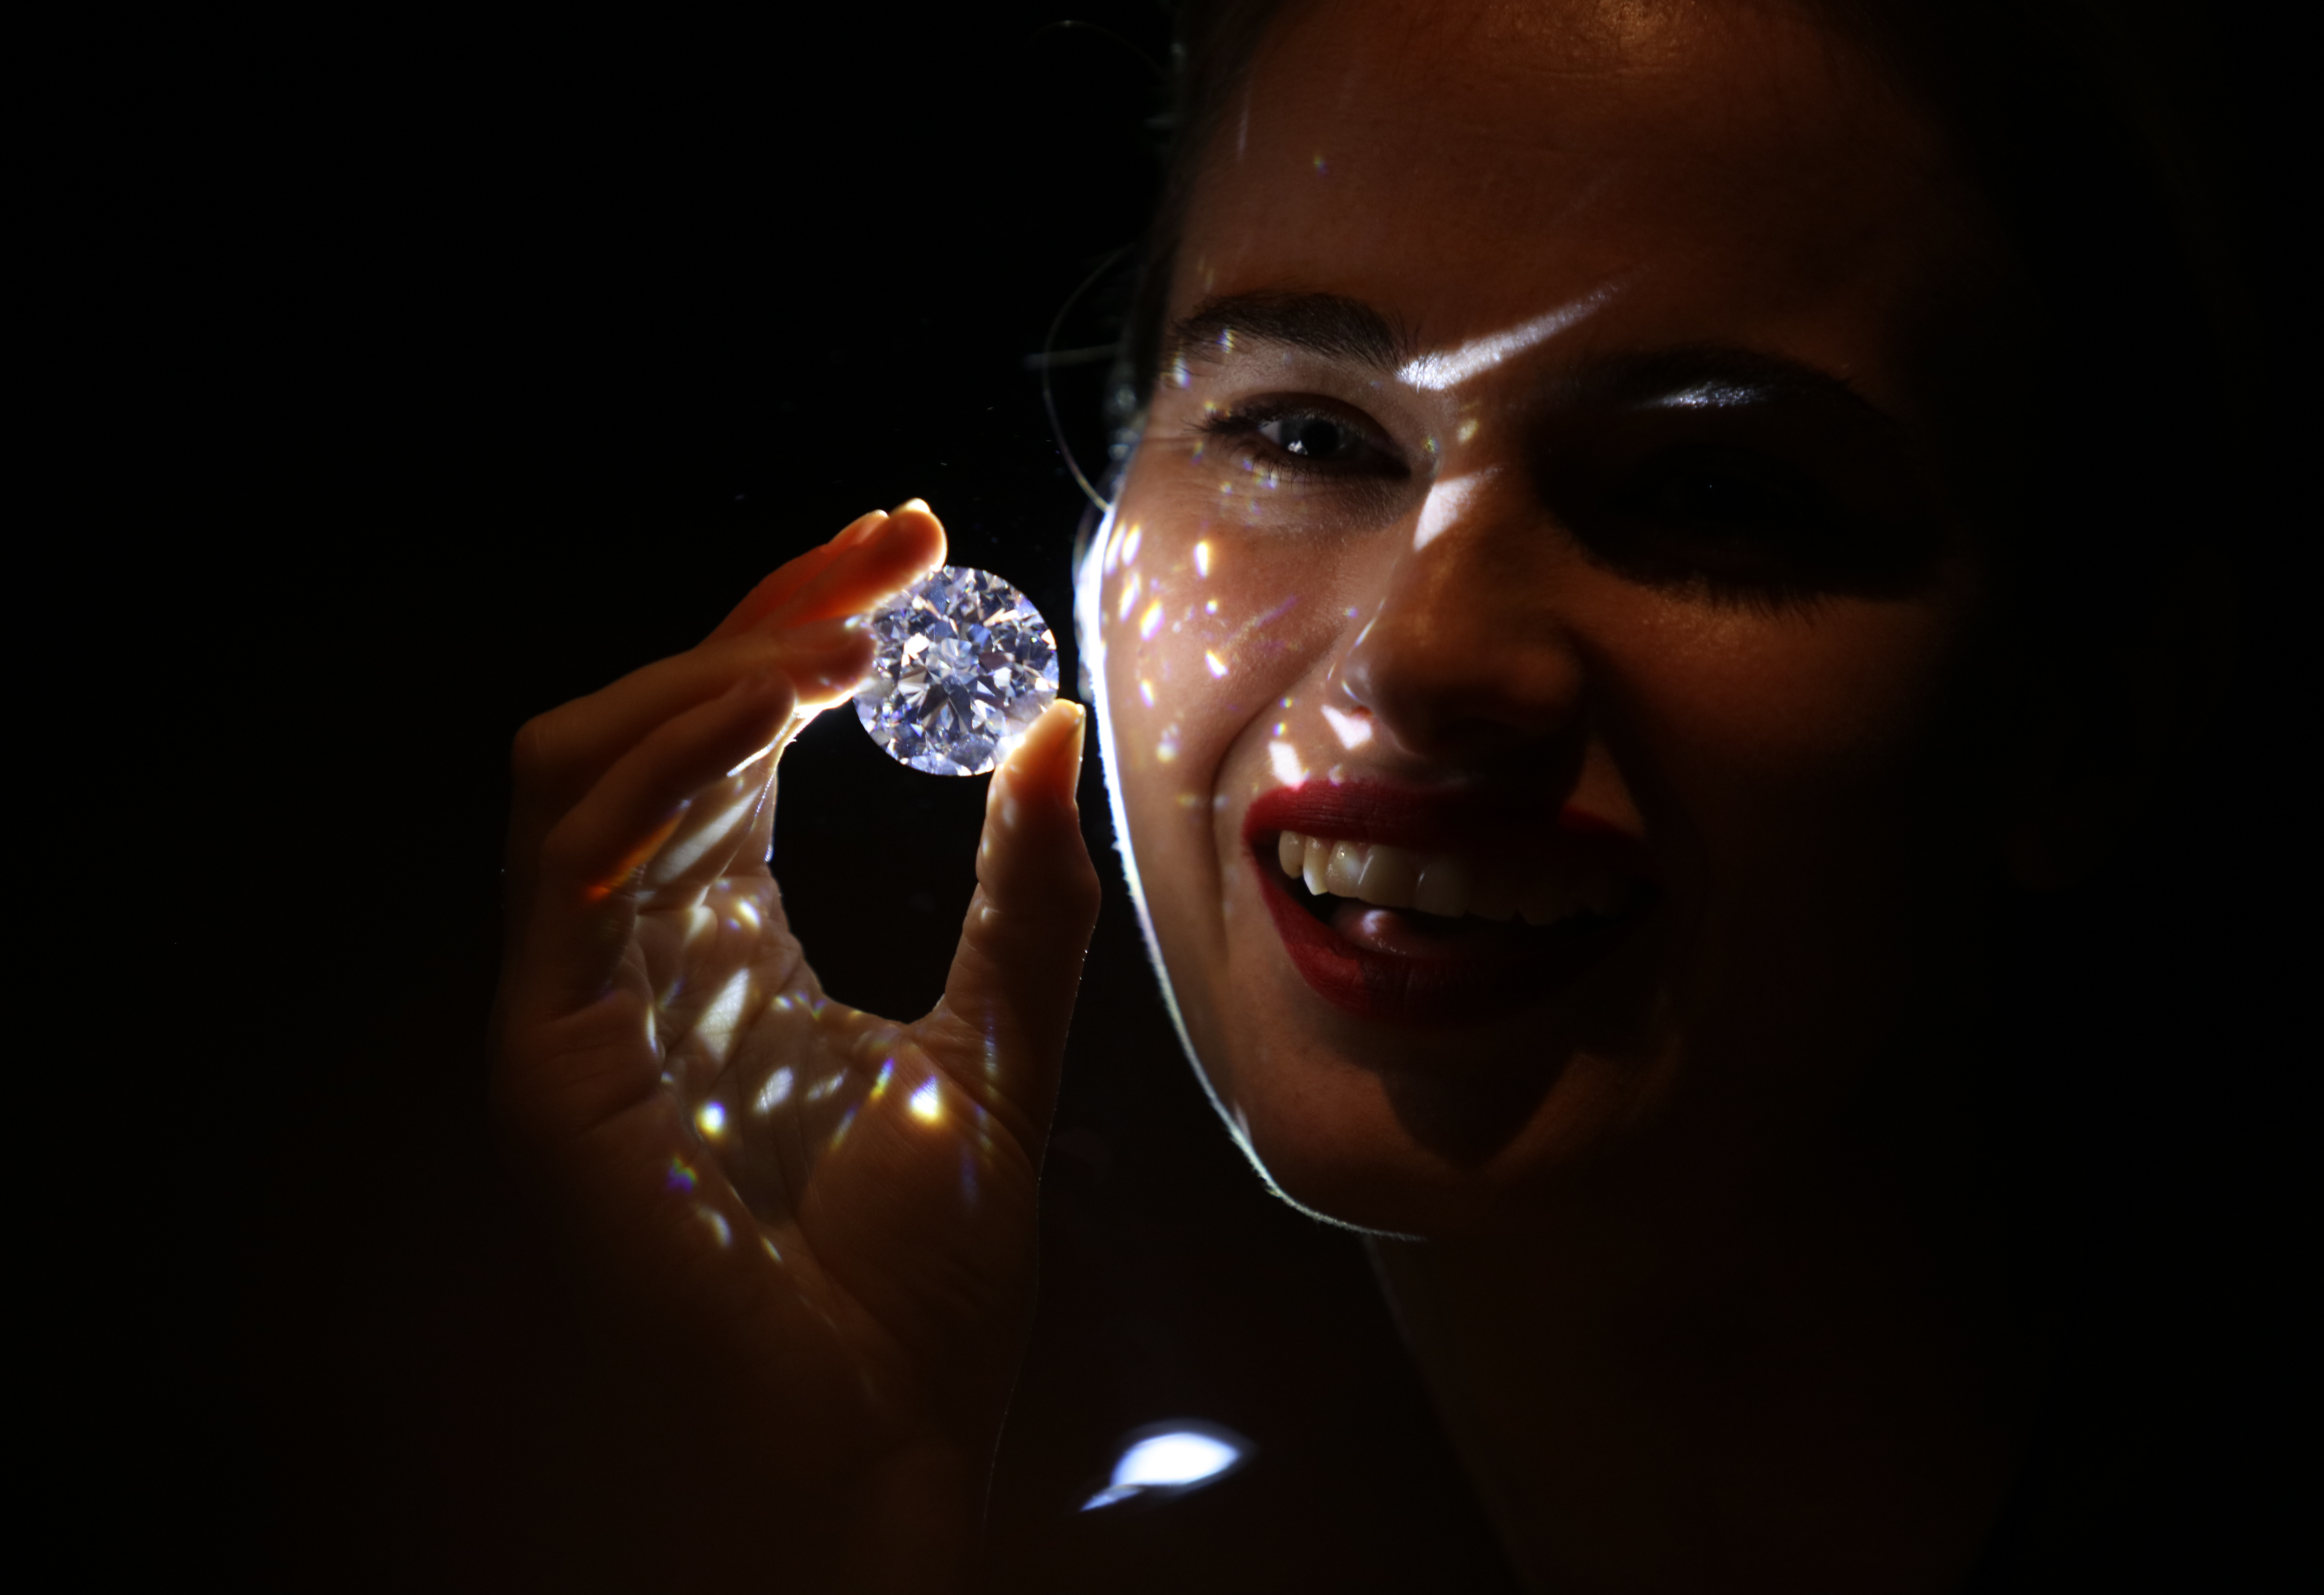 A 102.34 carat flawless perfection white diamond at Sotheby's London. Only a small number of diamonds weighing over 100 carats have been recorded, and barely any of  those are perfect in all Critical Criteria: Colour, Clarity, Cut & Carat. Price- available for purchase at a price considerable higher than the current auction record for a white diamond - US$33.7 million.  Where: London, United Kingdom When: 08 Feb 2018 Credit: WENN.com